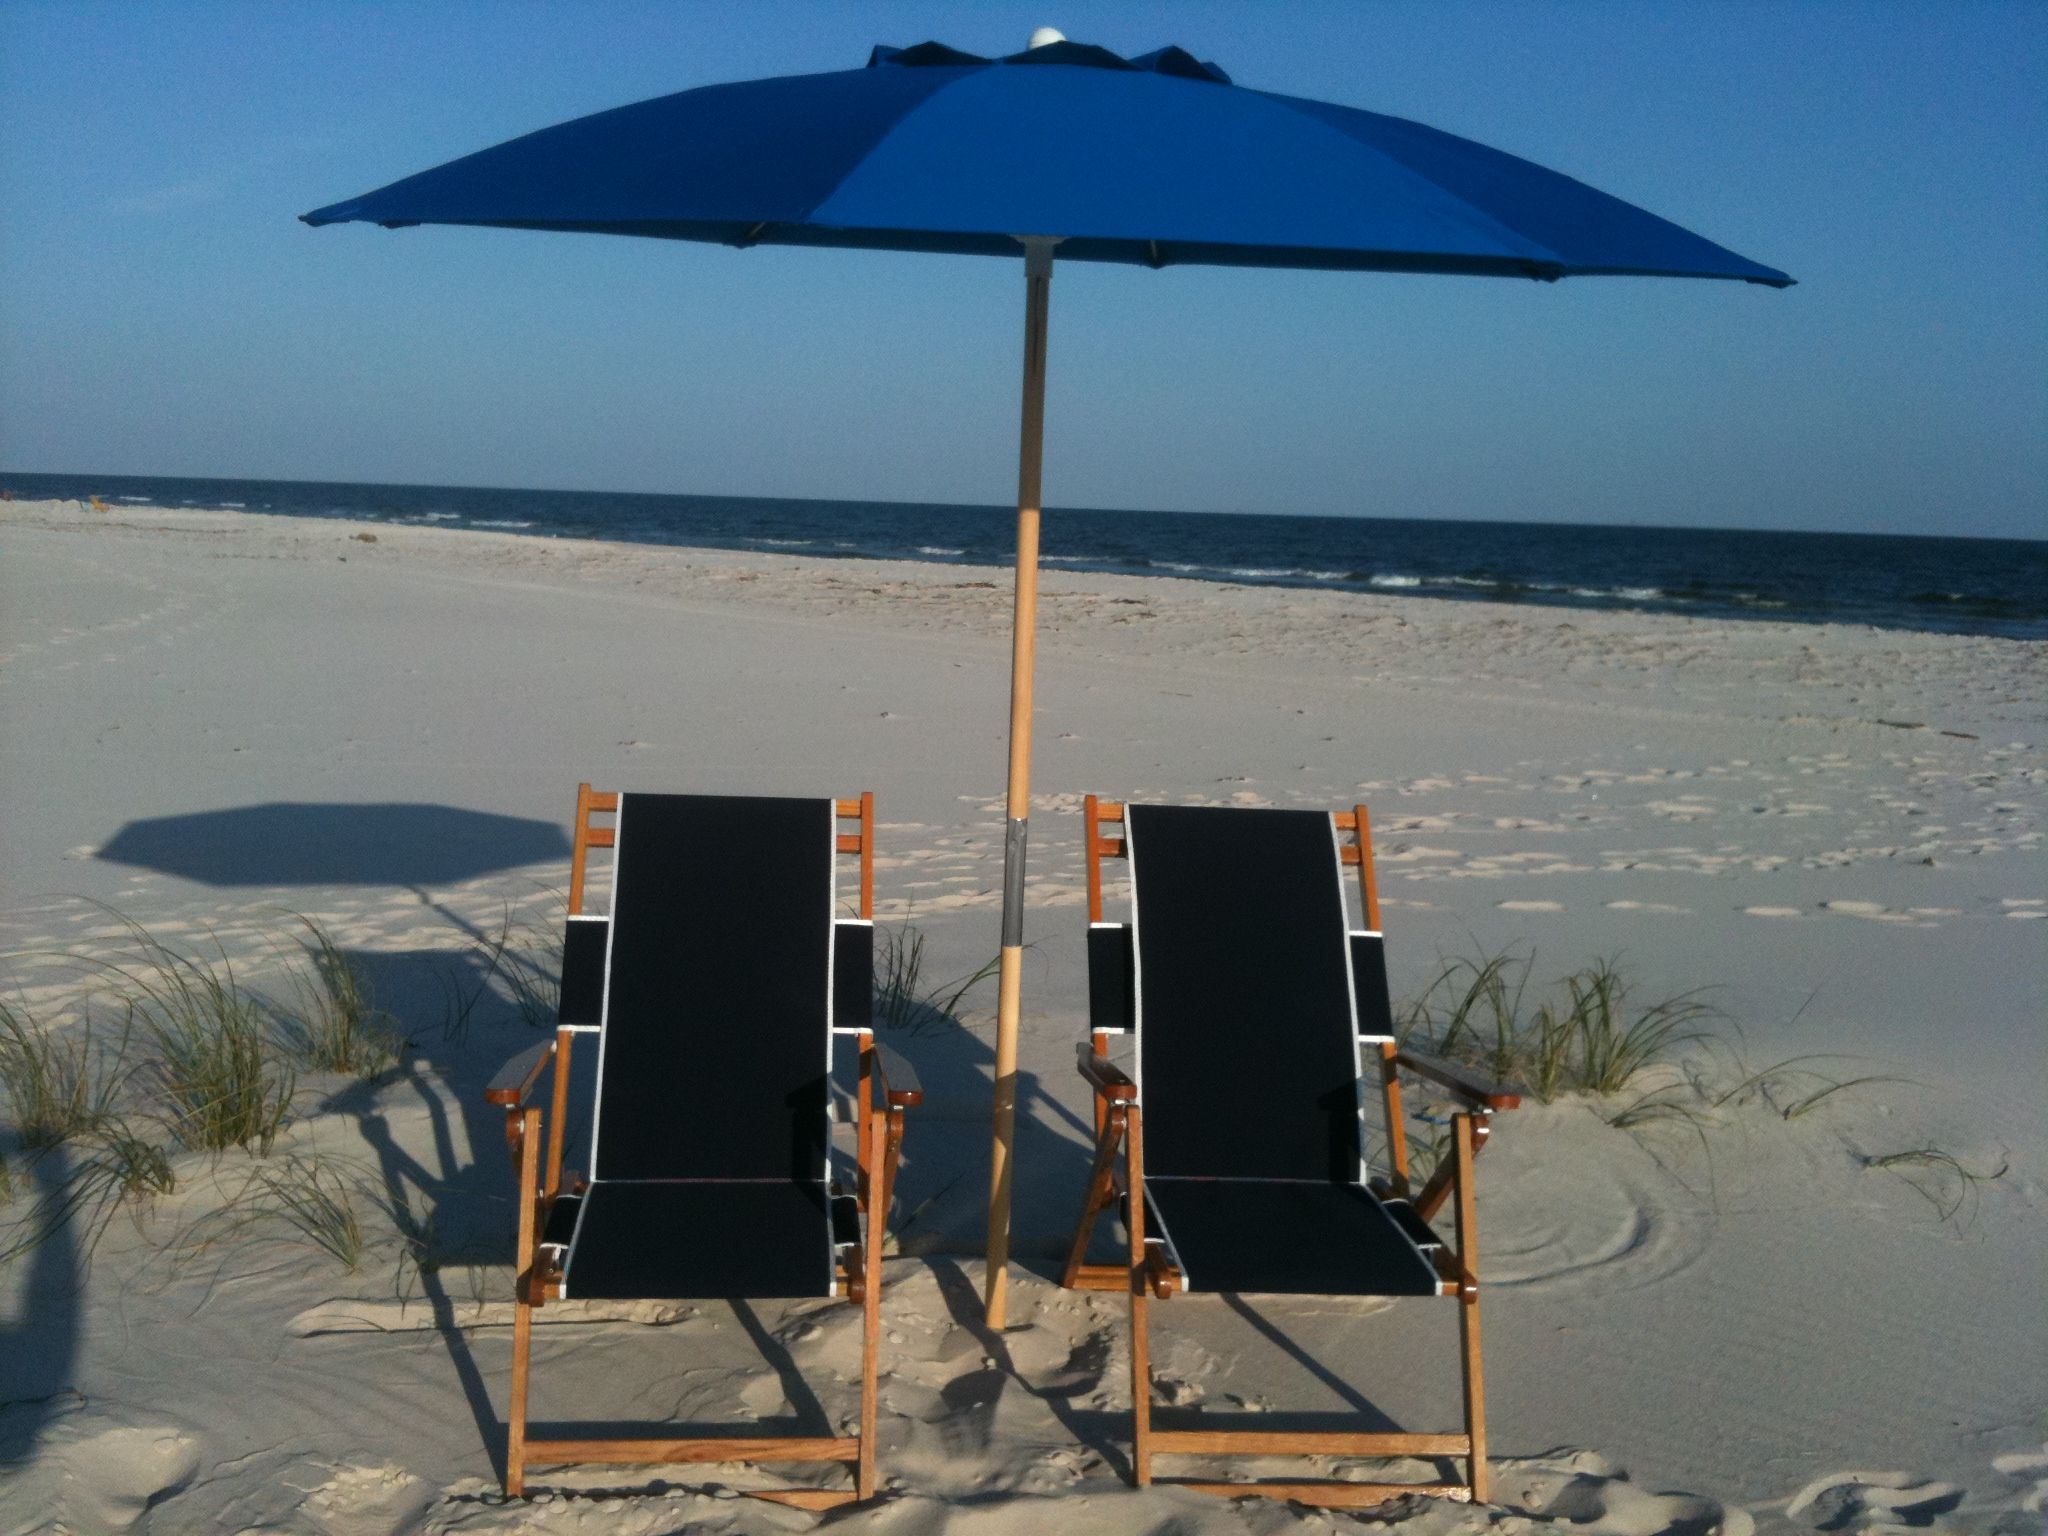 Beach lounge chairs with umbrella productcreationlabs